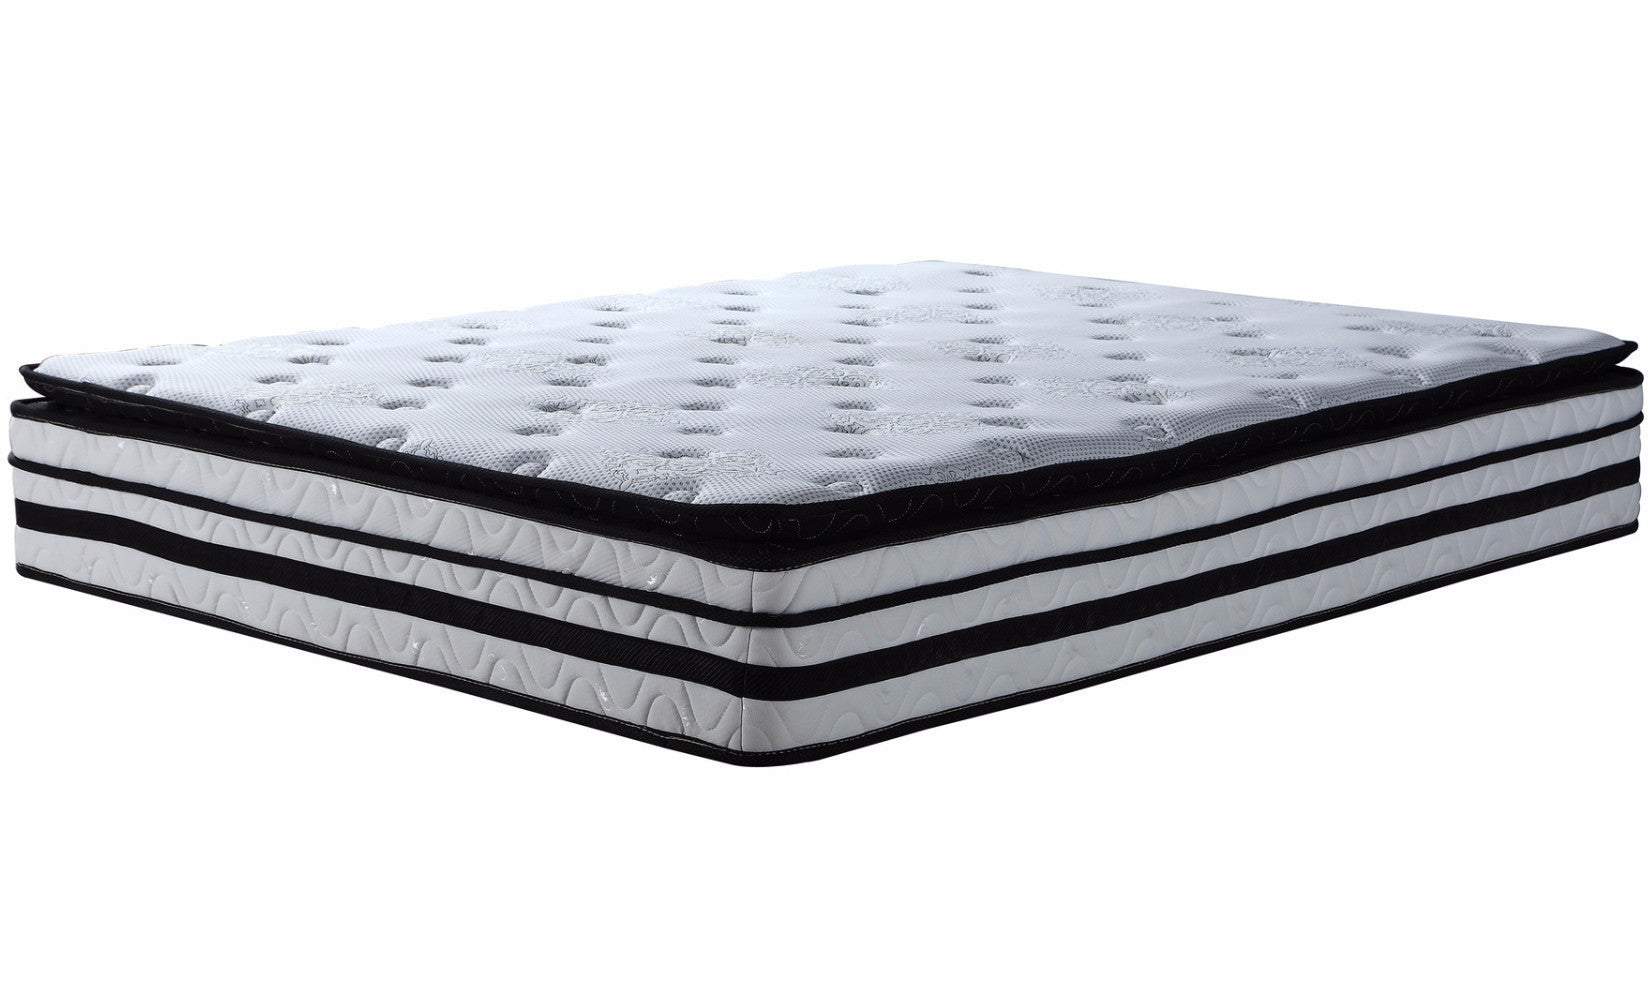 Air Hybrid Innerspring Gel Memory Foam Mattress Image